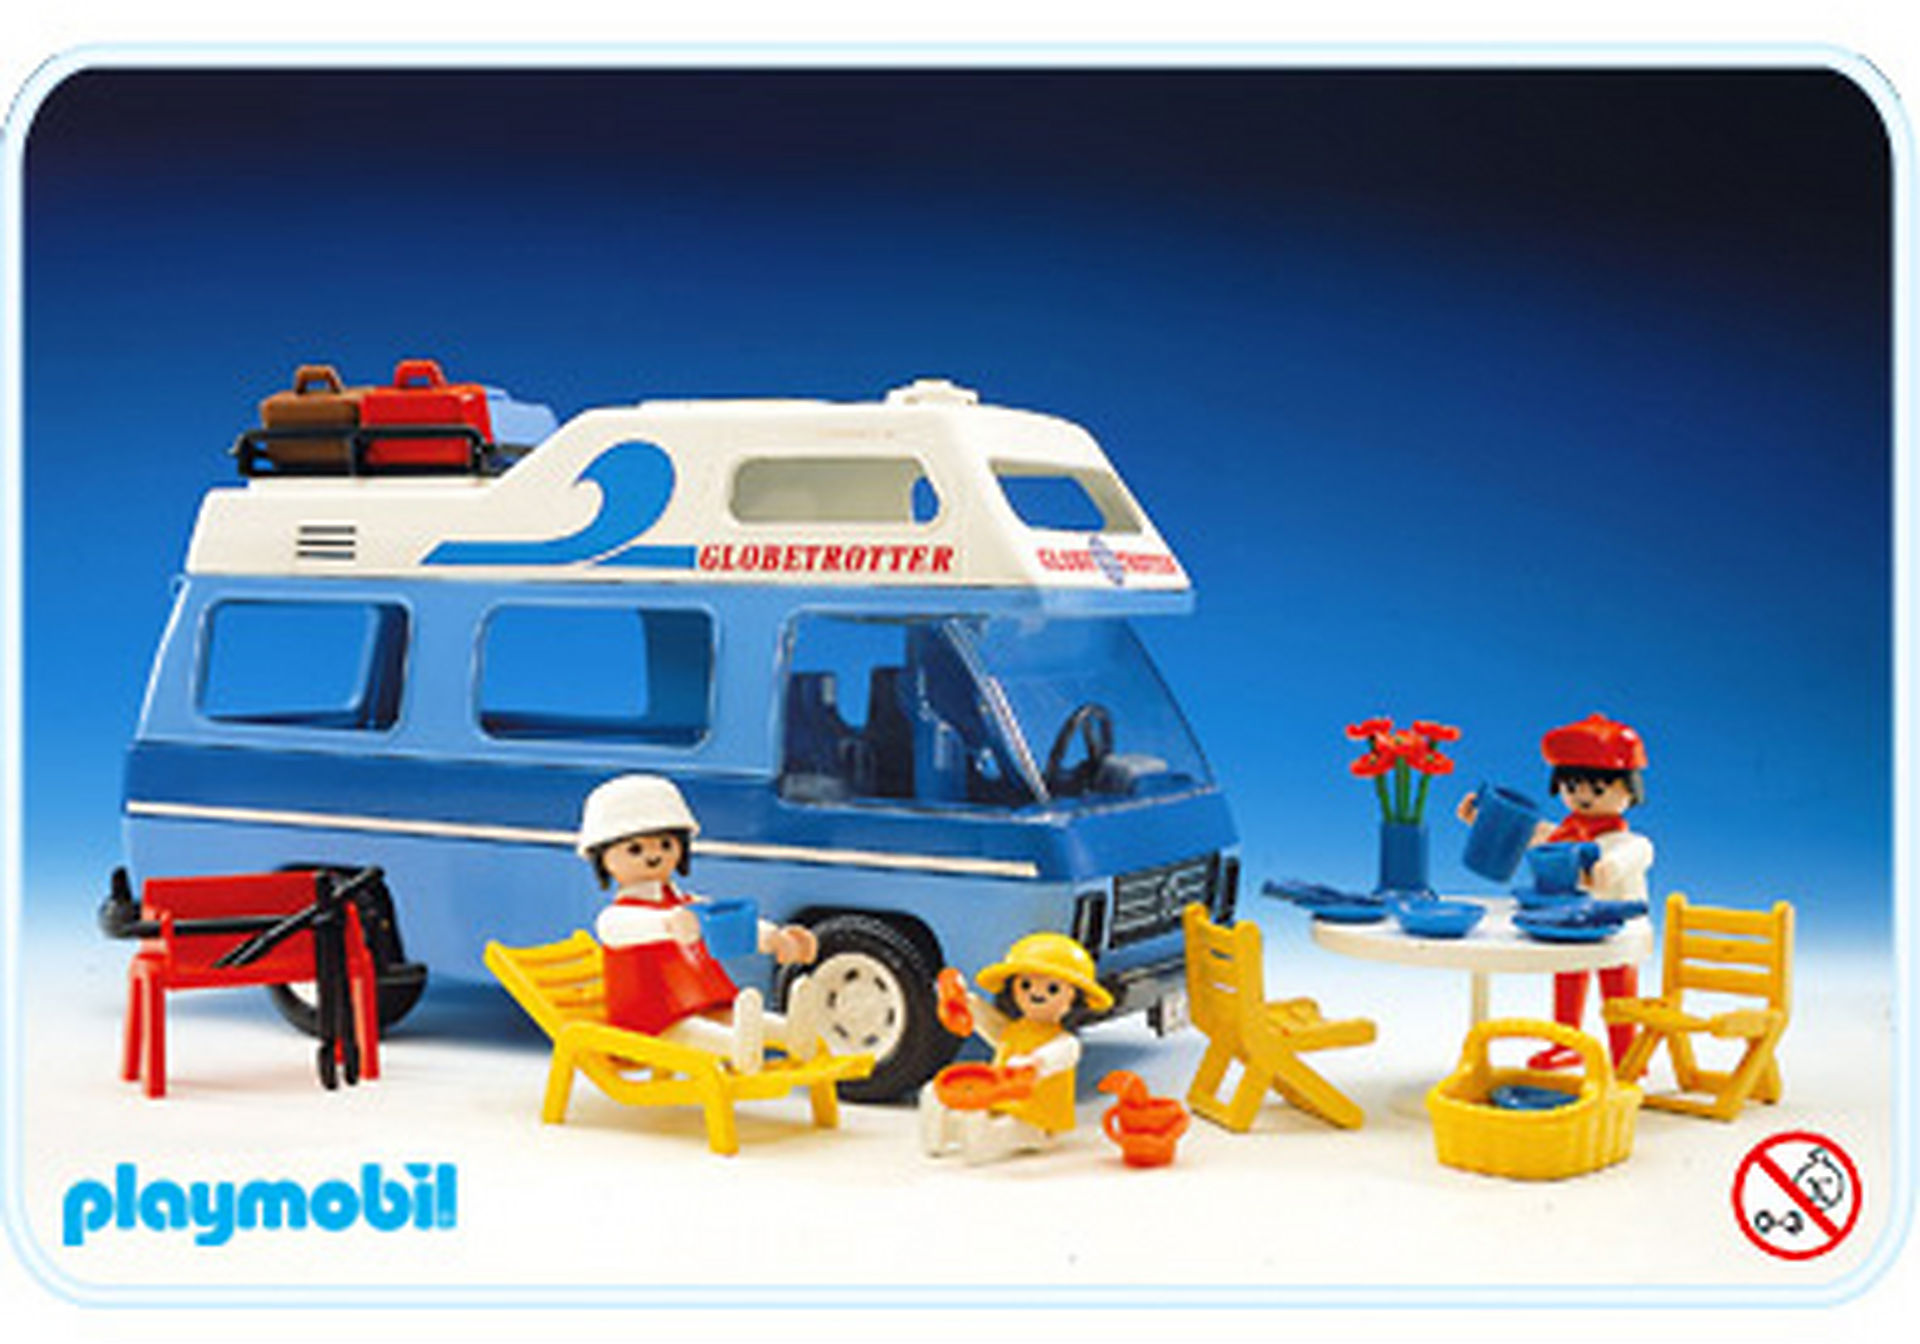 http://media.playmobil.com/i/playmobil/3258-B_product_detail/Camper